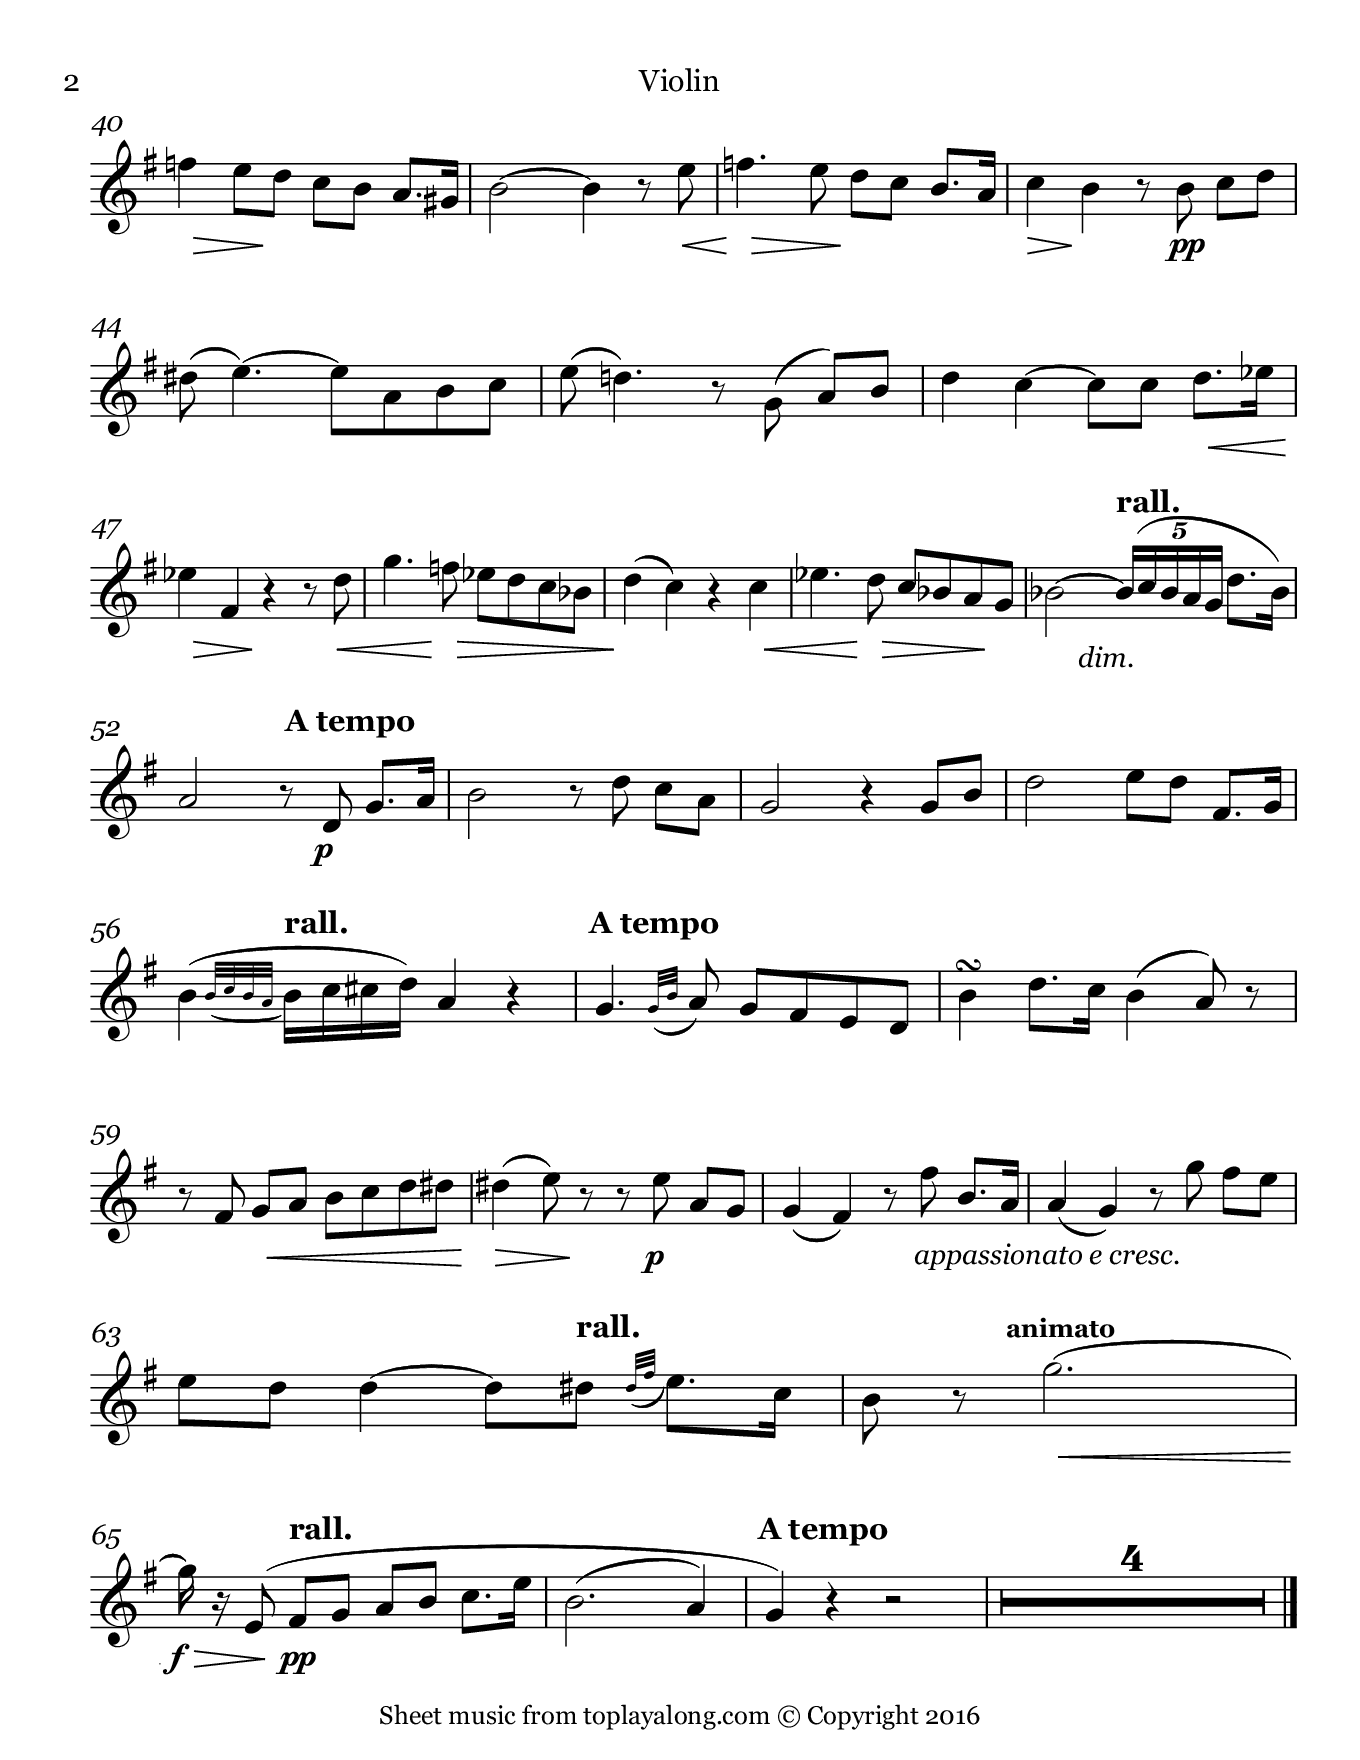 Vieille chanson by Bizet. Sheet music for Violin, page 2.